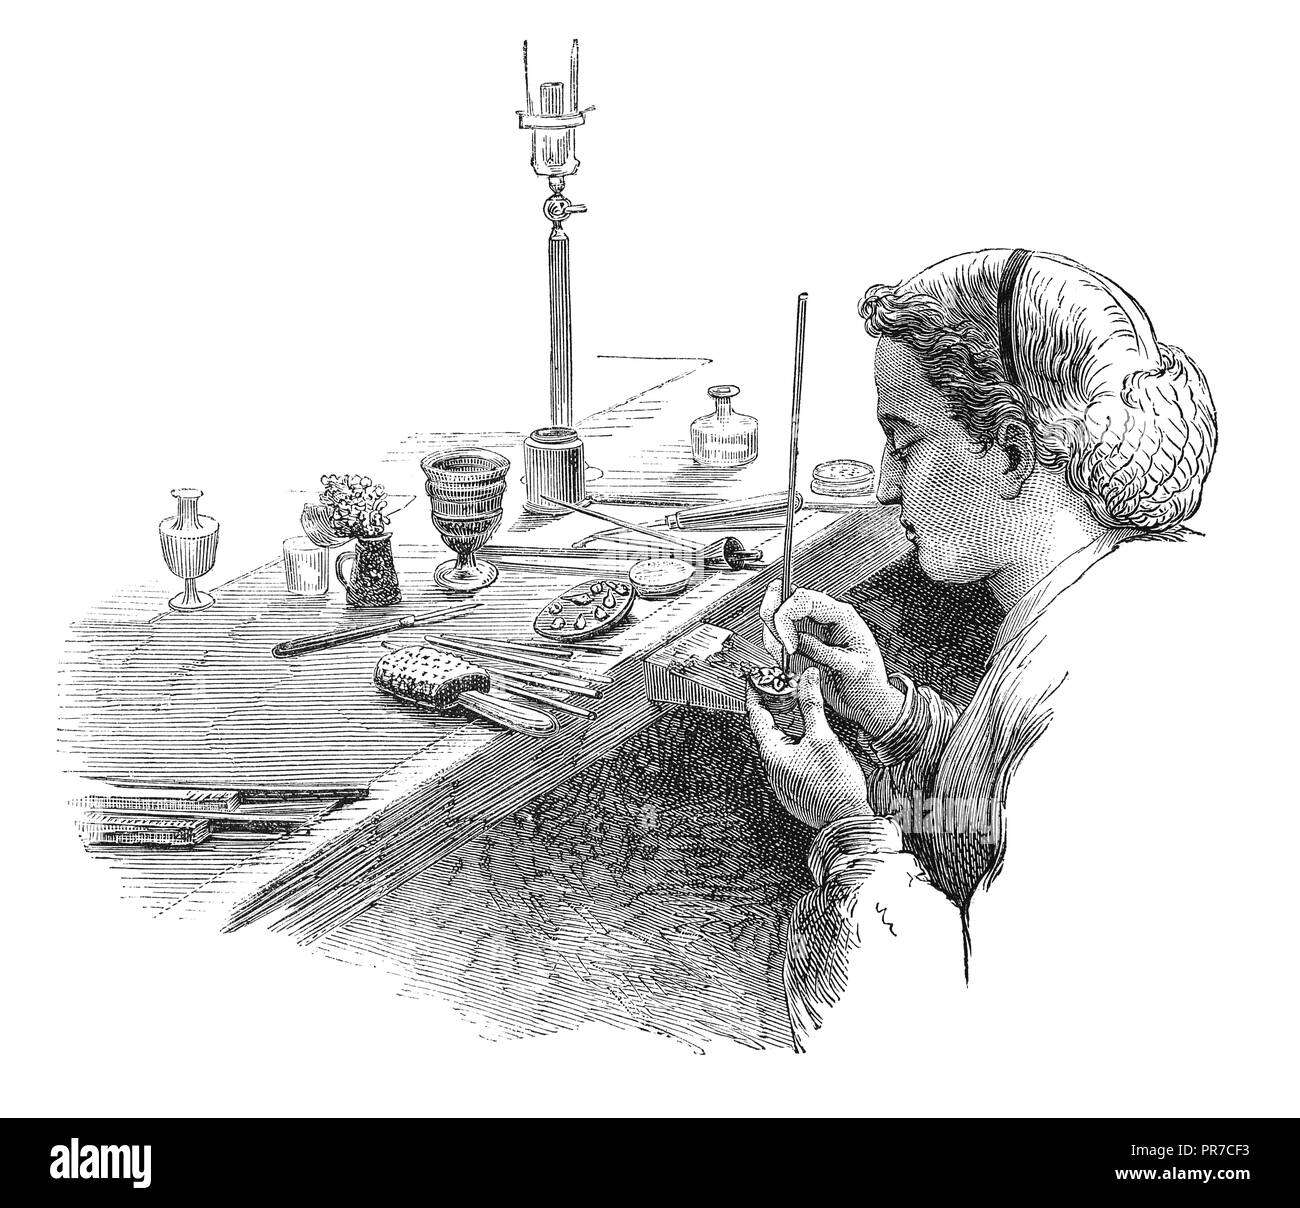 19th century illustration of polishing - frequent operation in jewel making. Published in 'The Practical Magazine, an Illustrated Cyclopedia of Indust - Stock Image